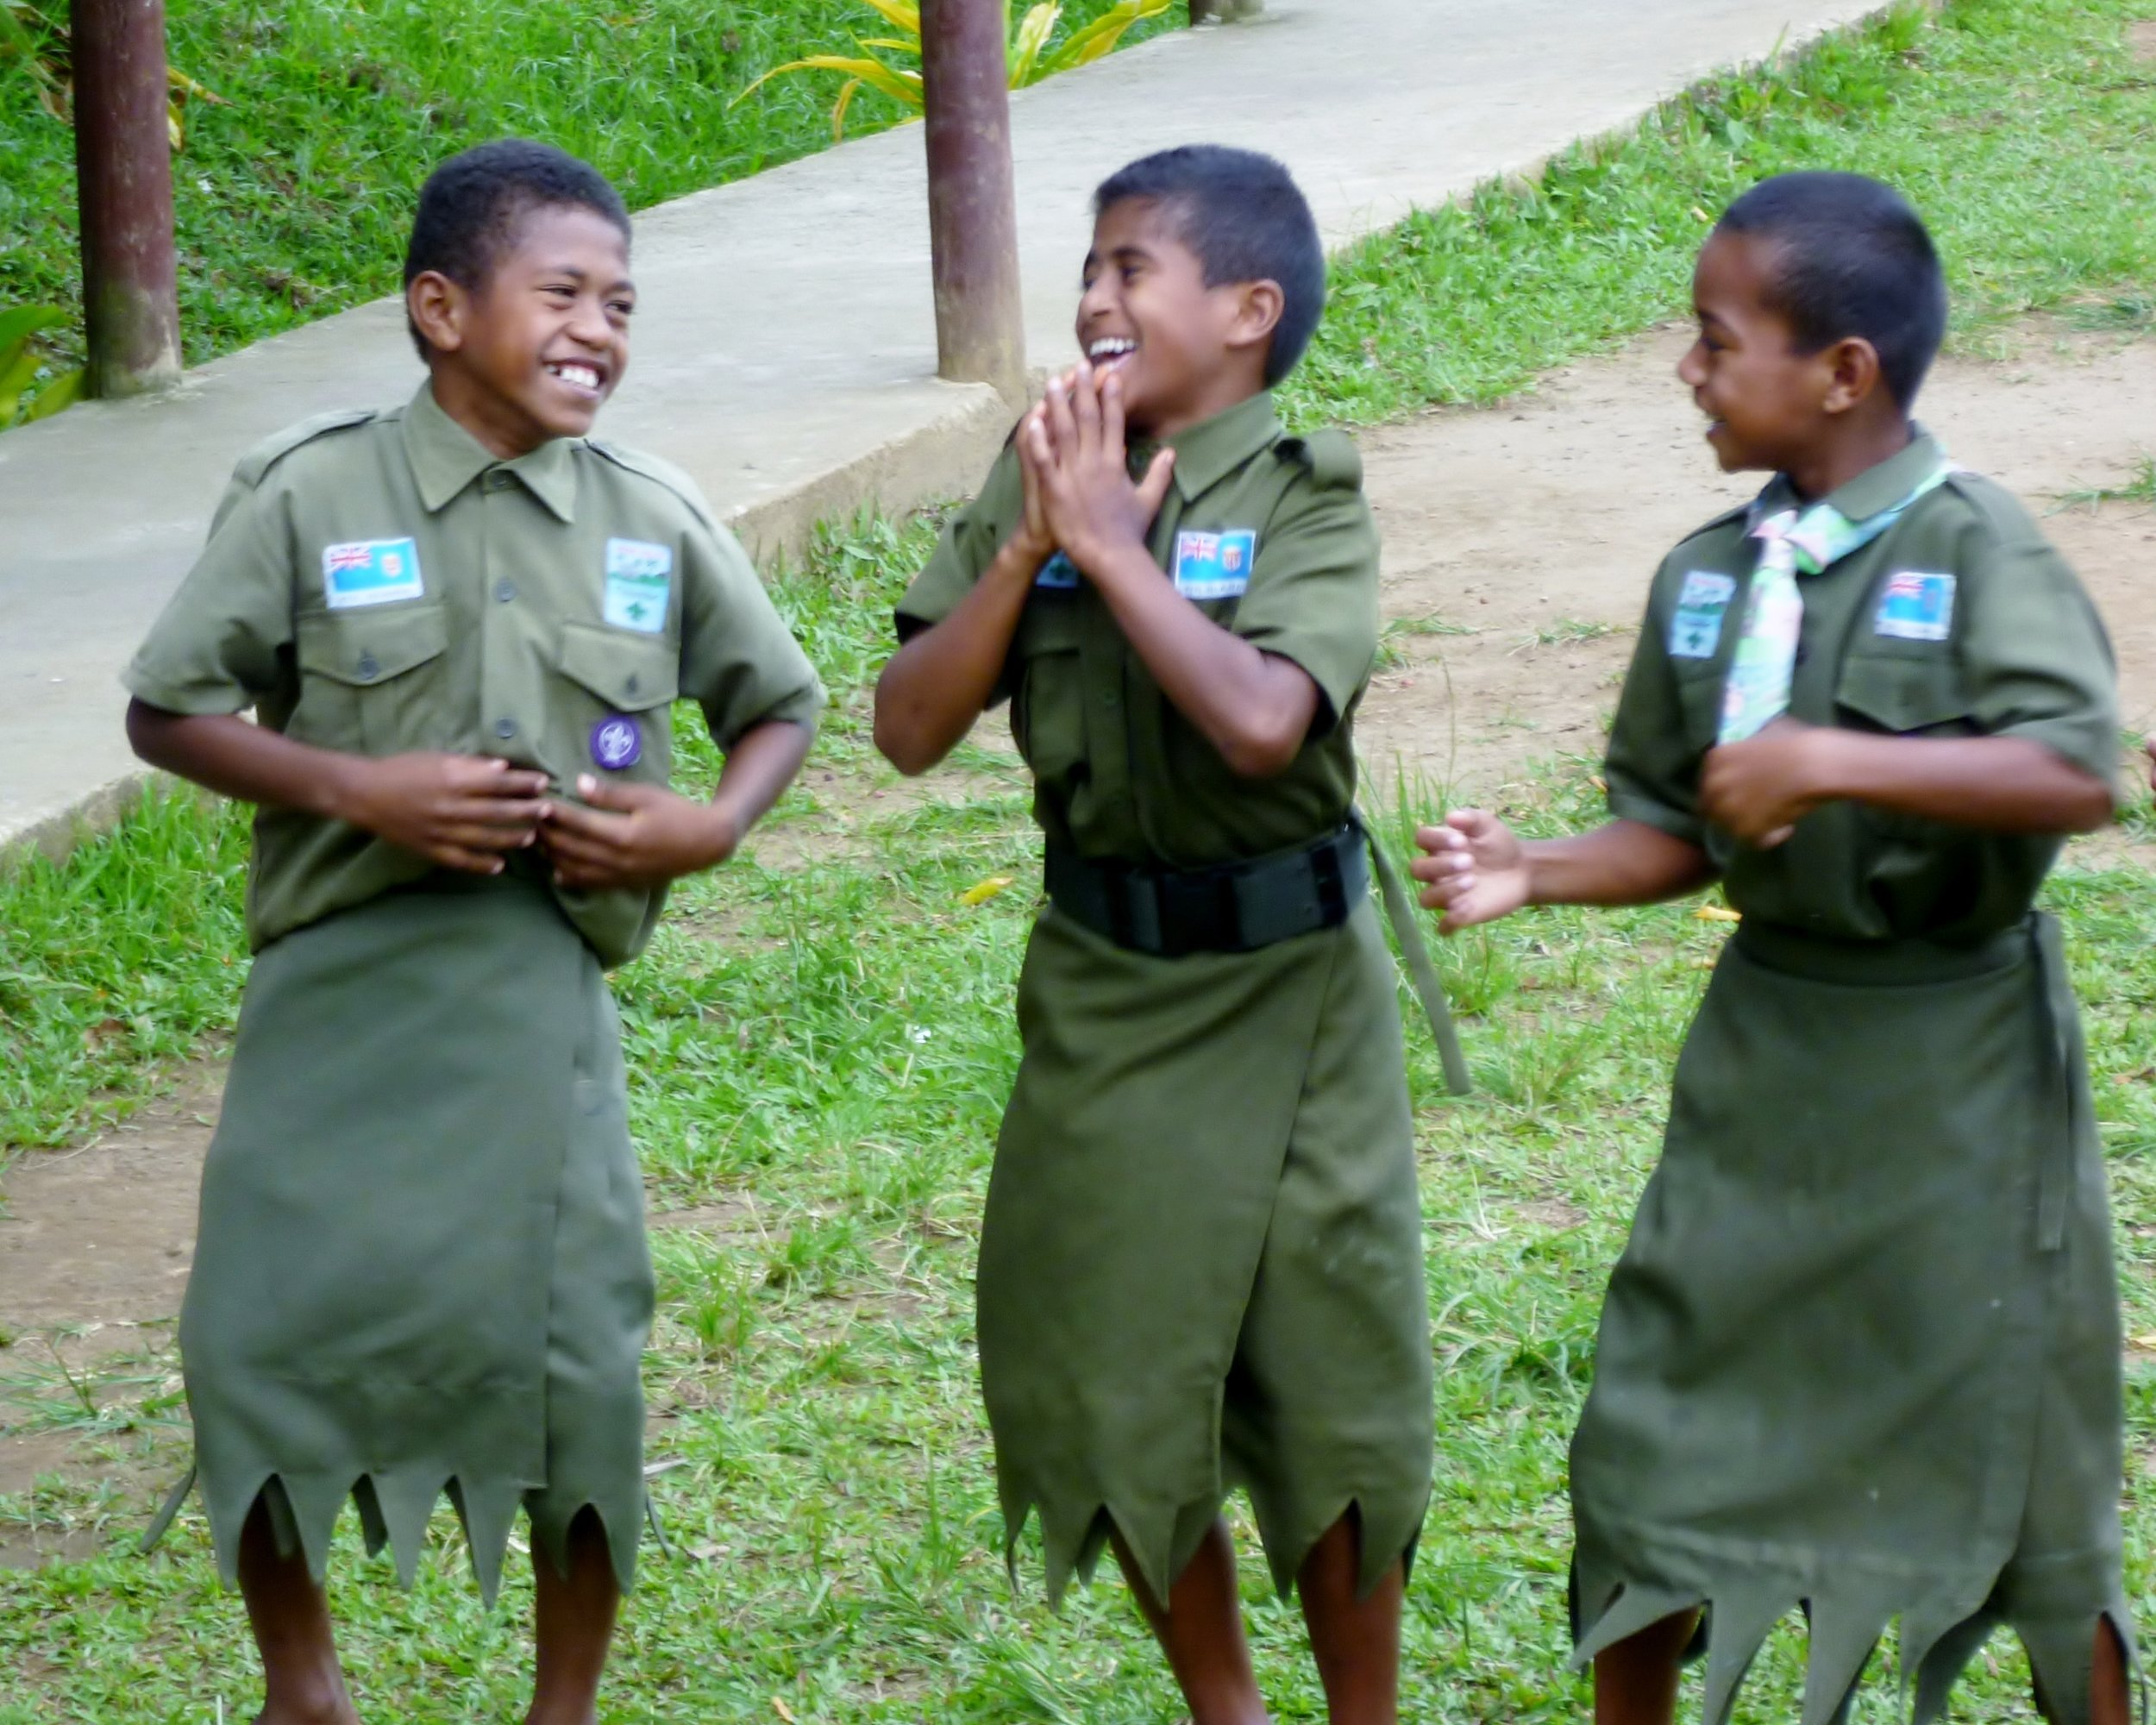 Fijian Scouts practicing their dance moves...